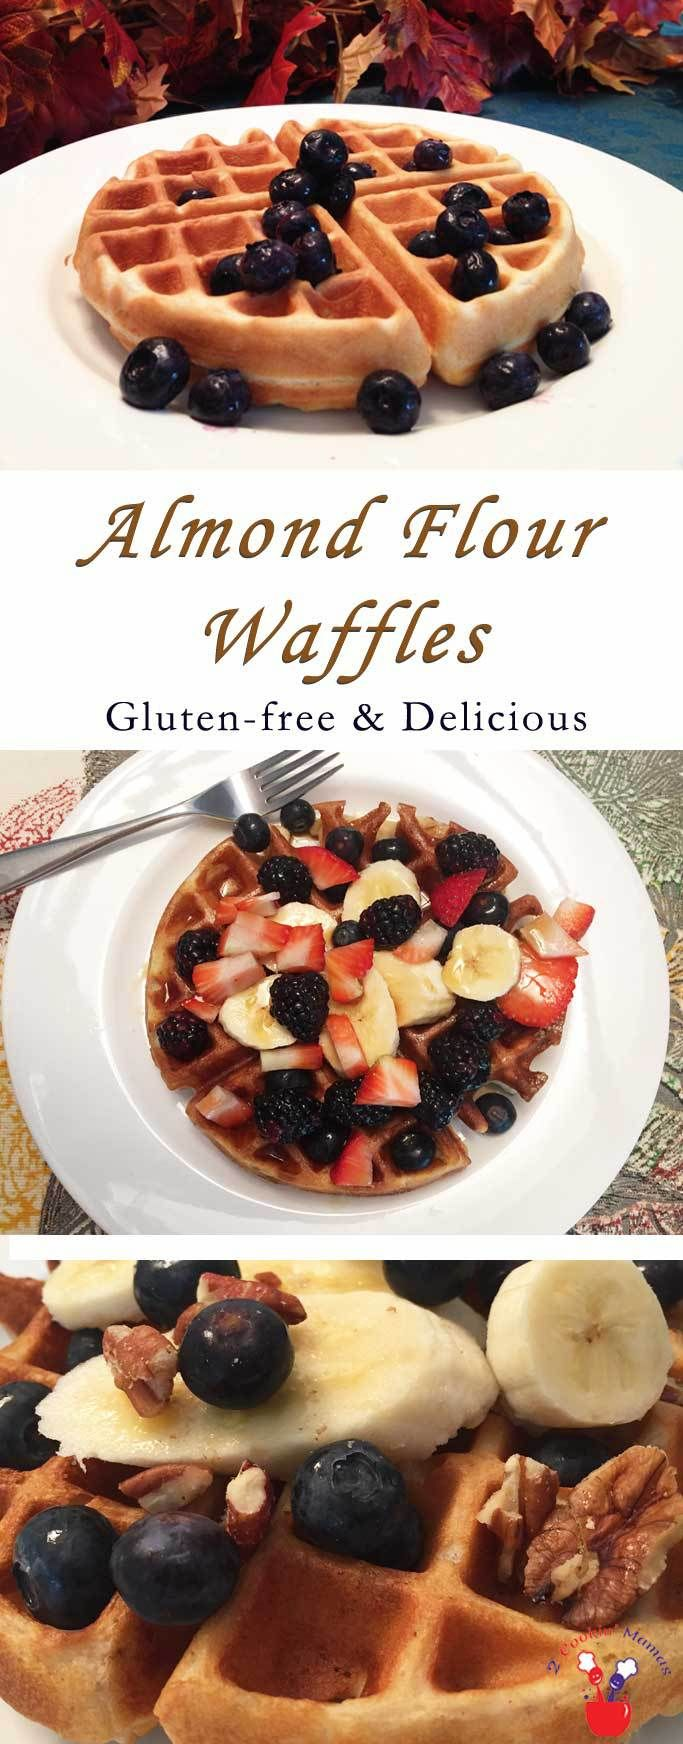 Almond Flour Waffles main | 2 Cookin Mamas Our Almond Flour Waffles are perfect for both gluten-free & paleo diets. Made with almond flour, eggs & sweetened with honey, it's one tasty breakfast. #recipe